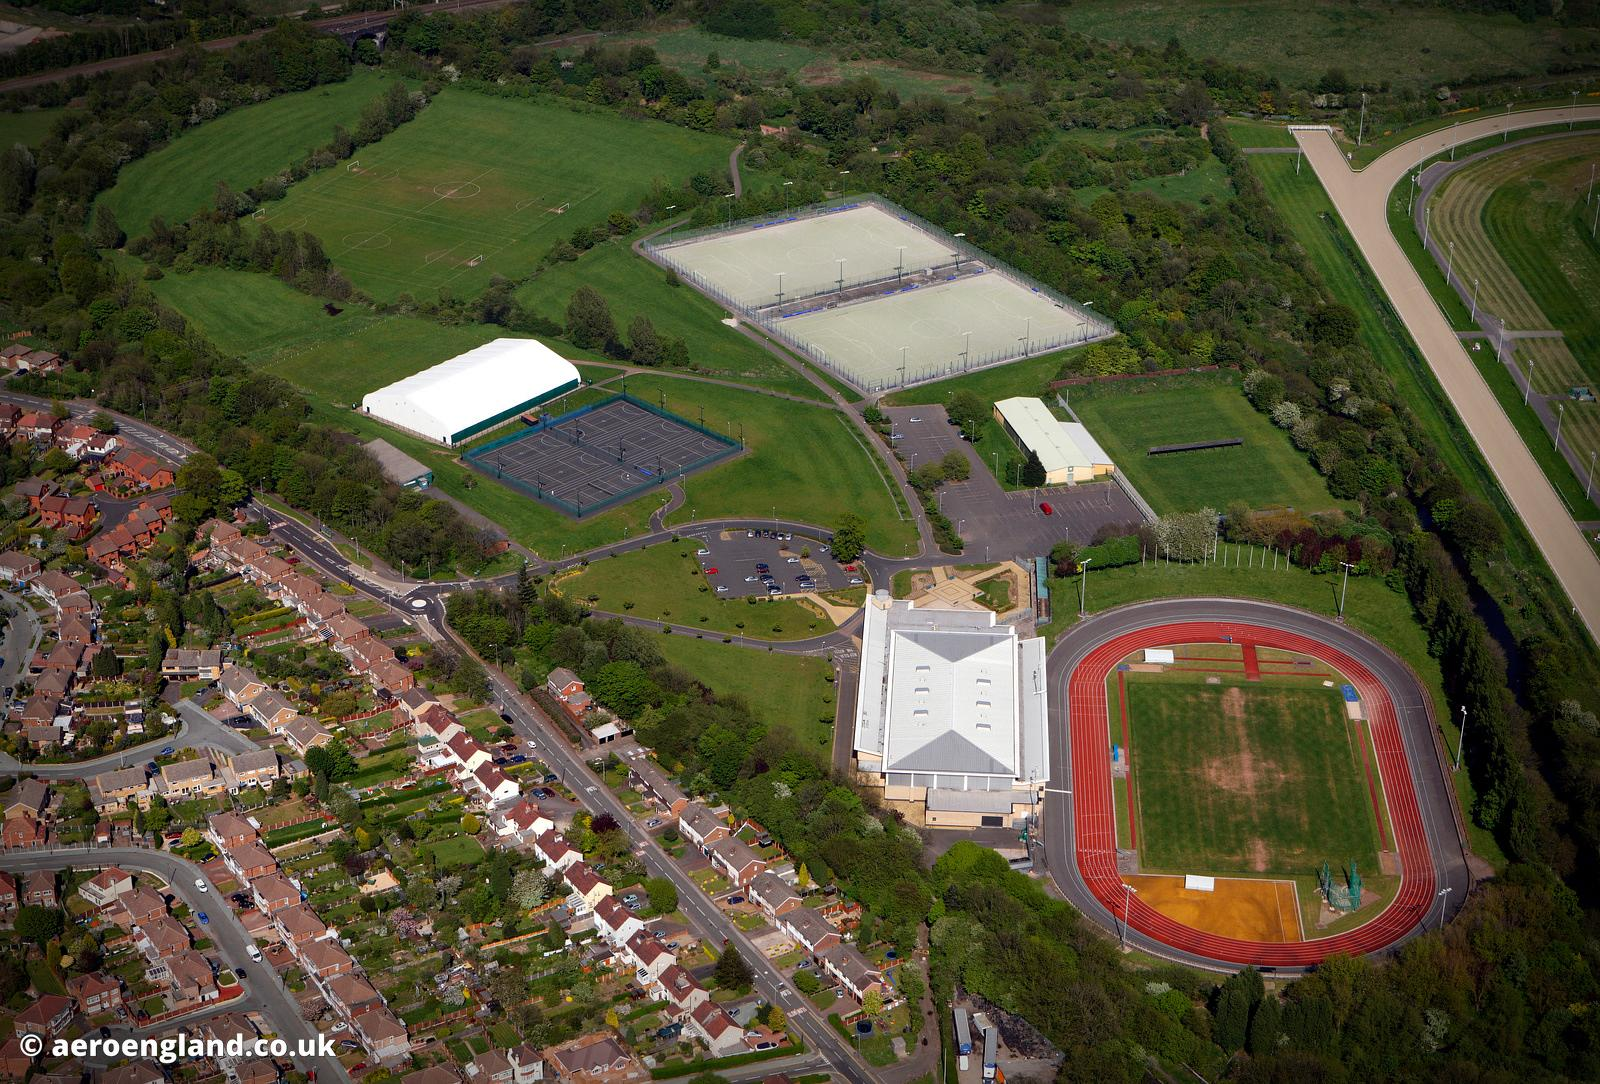 aerial photo of Aldersley Stadium in Wolverhampton UK